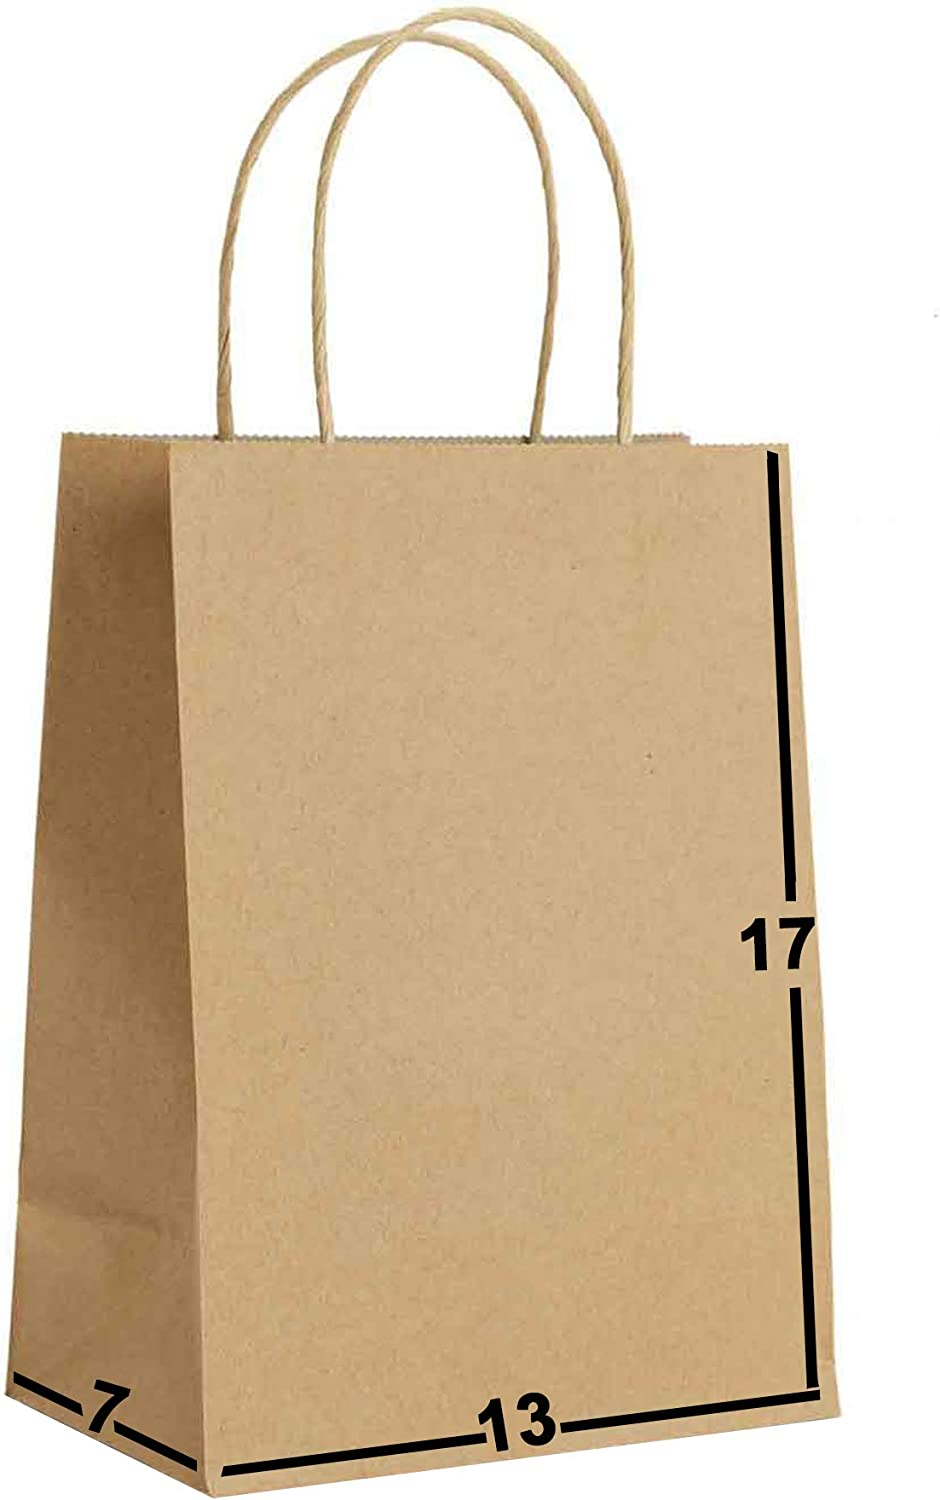 50 Packs-Brown Kraft Paper Gift Bags Bulk with Handles 13 X 7 X 17. Ideal for Shopping, Packaging, Retail, Party, Craft, Gifts, Wedding, Recycled, Business, Goody and Merchandise Bag (Brown, 50 Bags)